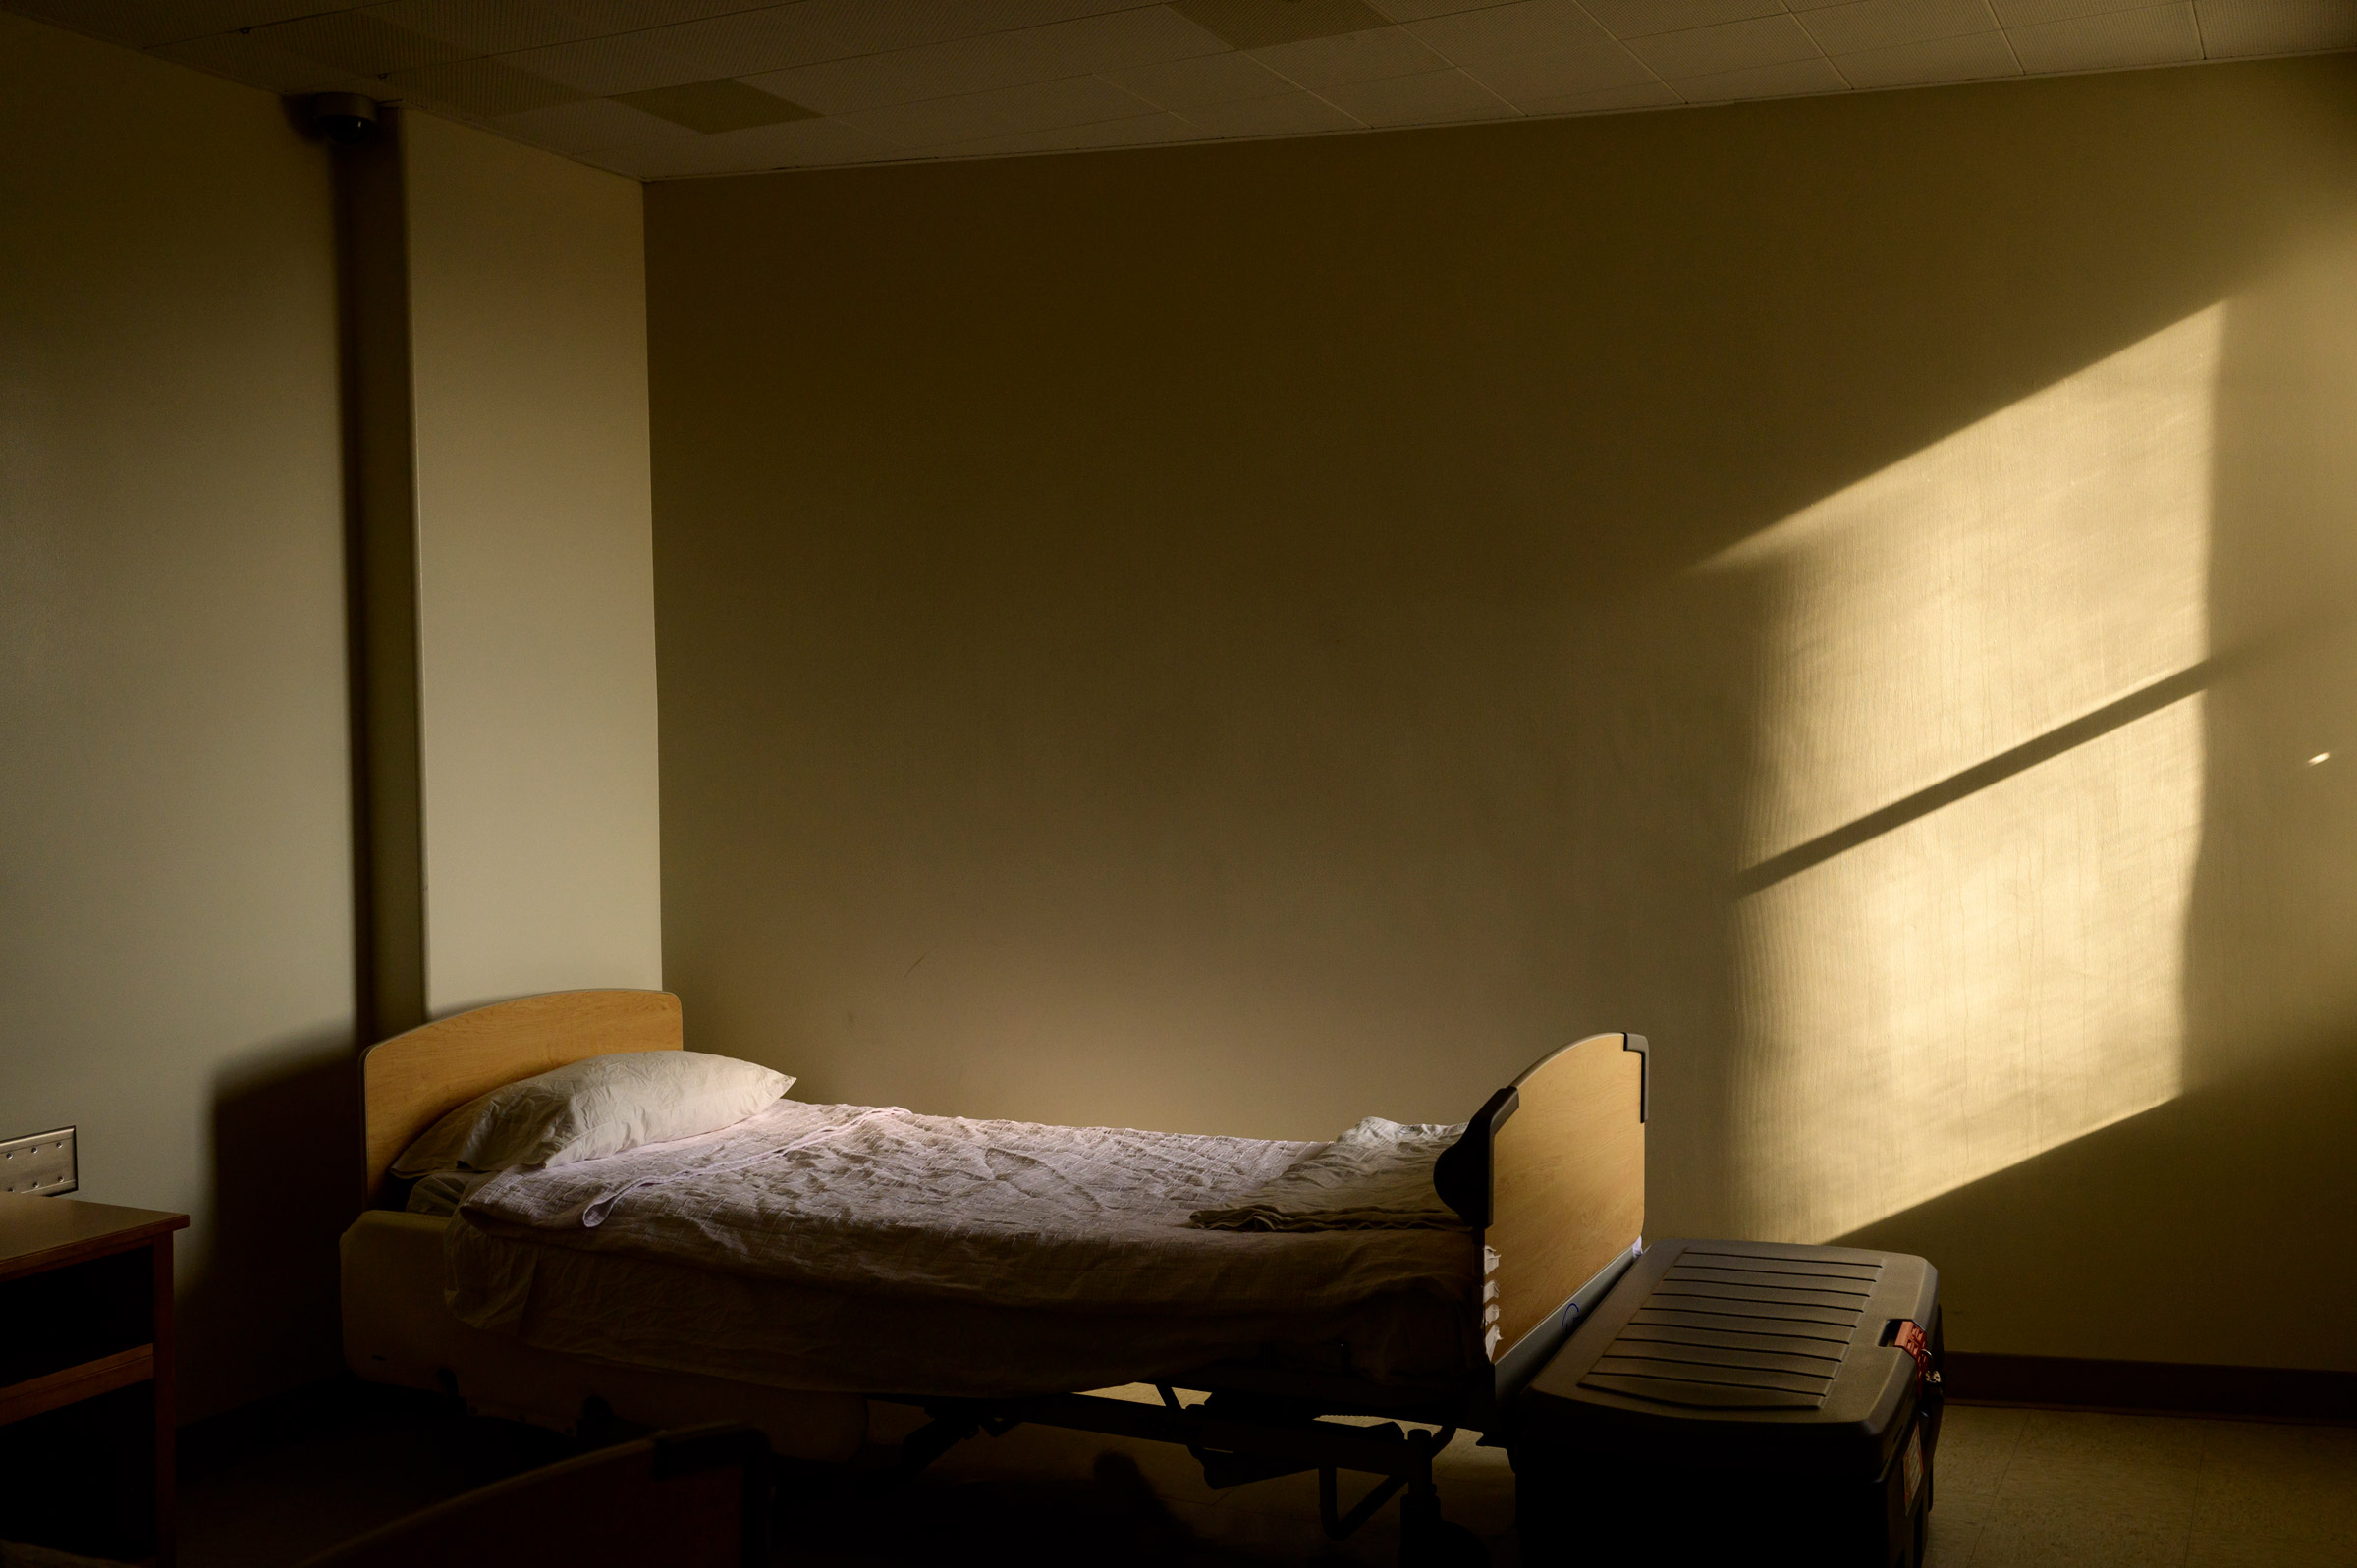 After the Ohio Valley Medical Center closed, the city donated its former mental-health facility for use as a temporary winter shelter.